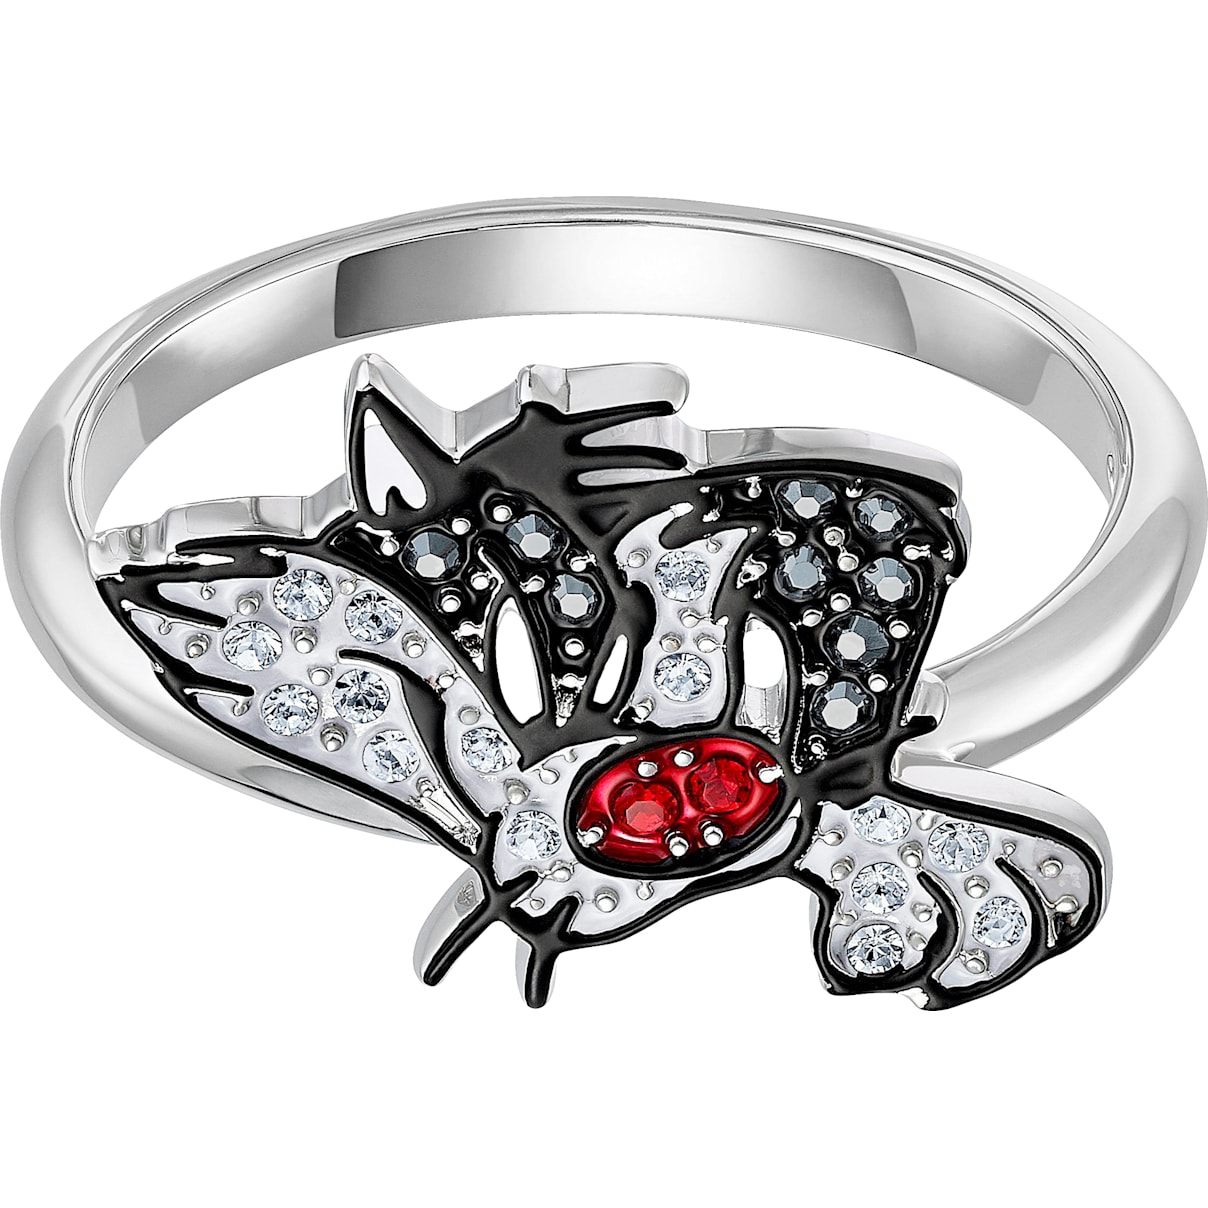 Swarovski Looney Tunes Sylvester Motif Ring, Multi-colored, Rhodium plated